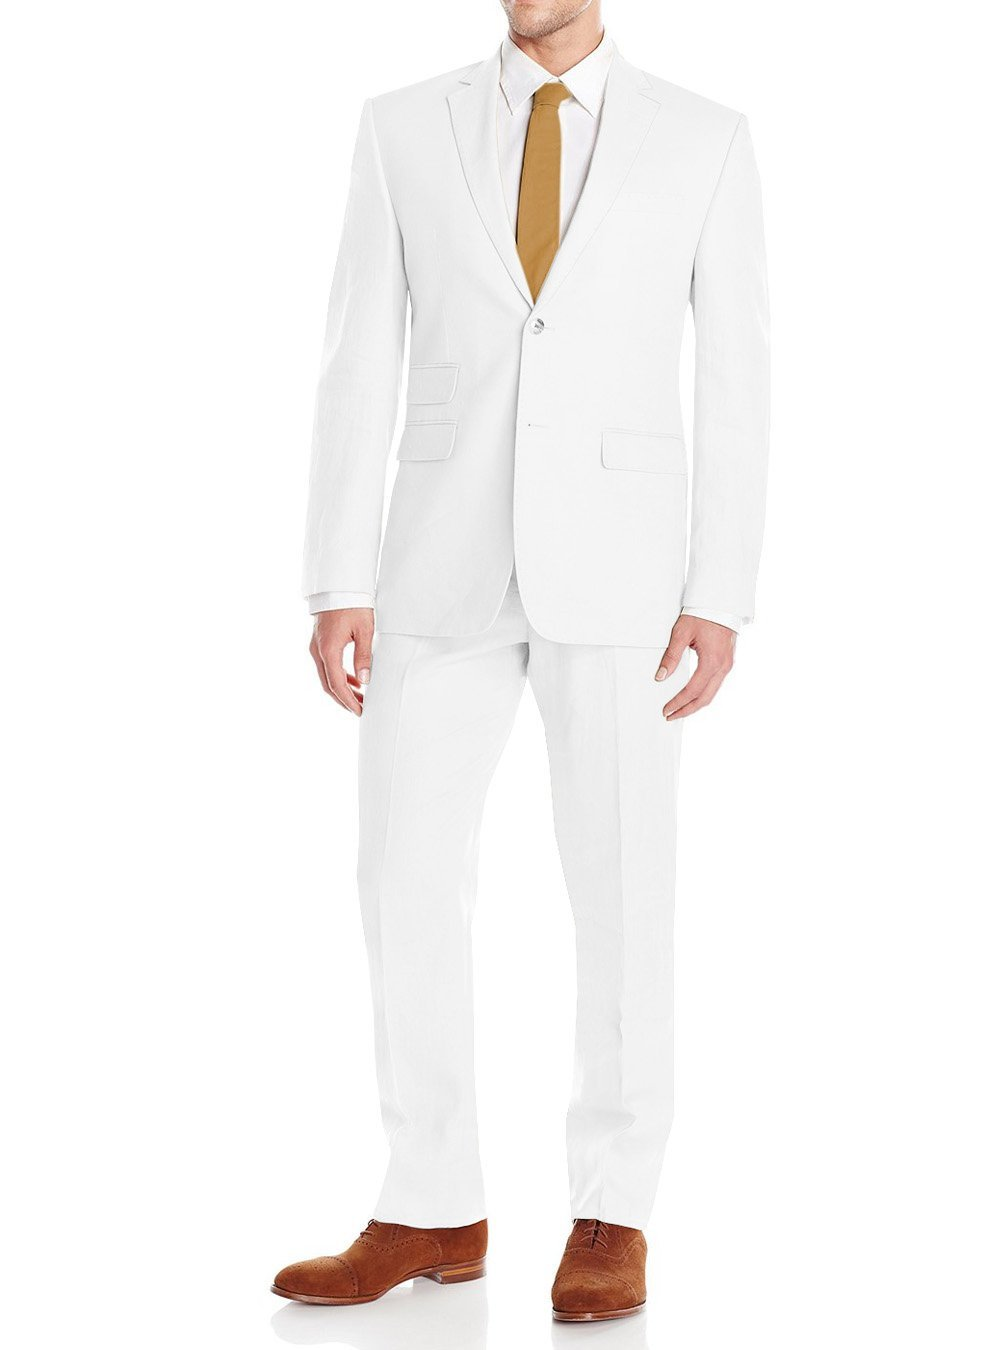 Gino Valentino Men's Modern Fit Summer Two Button Two Piece Linen Suit Set (38 Short US / 48S EU/W 32'', White)